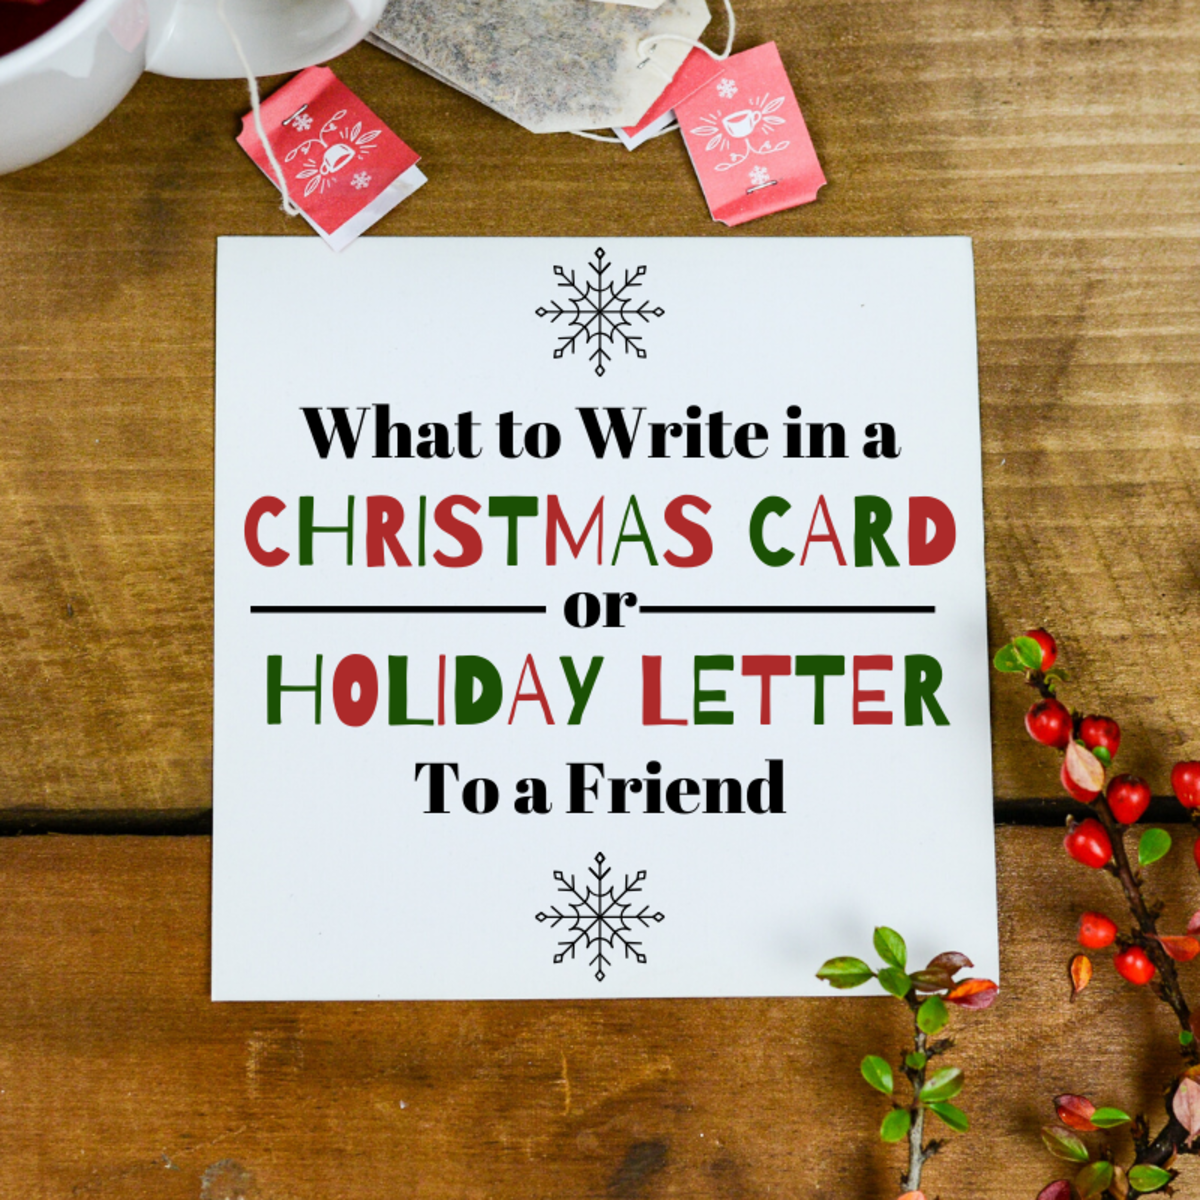 Cards and letters are great ways to connect with friends and family during the holidays. Use the examples, ideas, and tips in this article to craft a meaningful, heartfelt message.